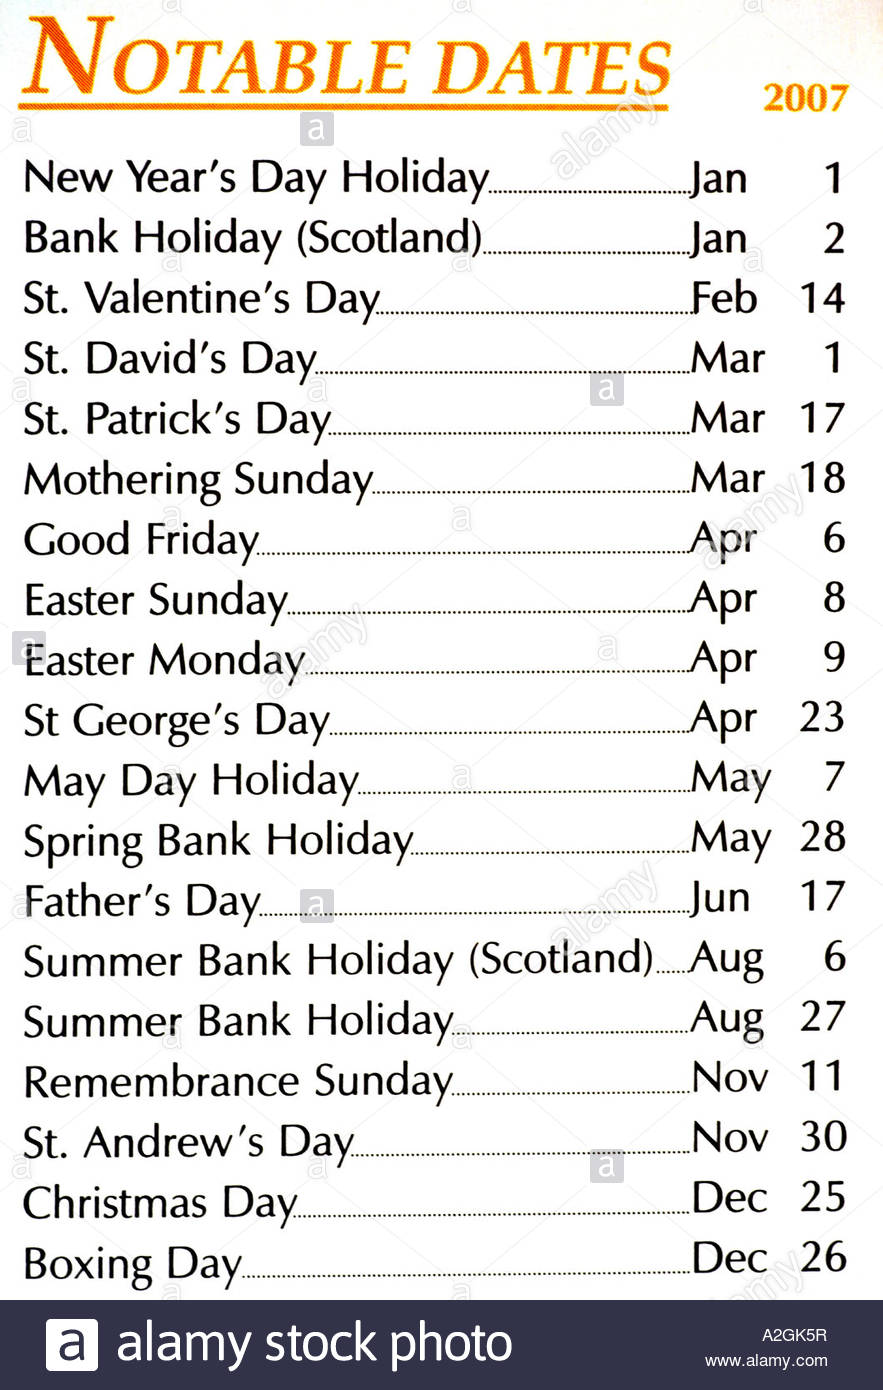 Notable dates 2007 - Stock Image